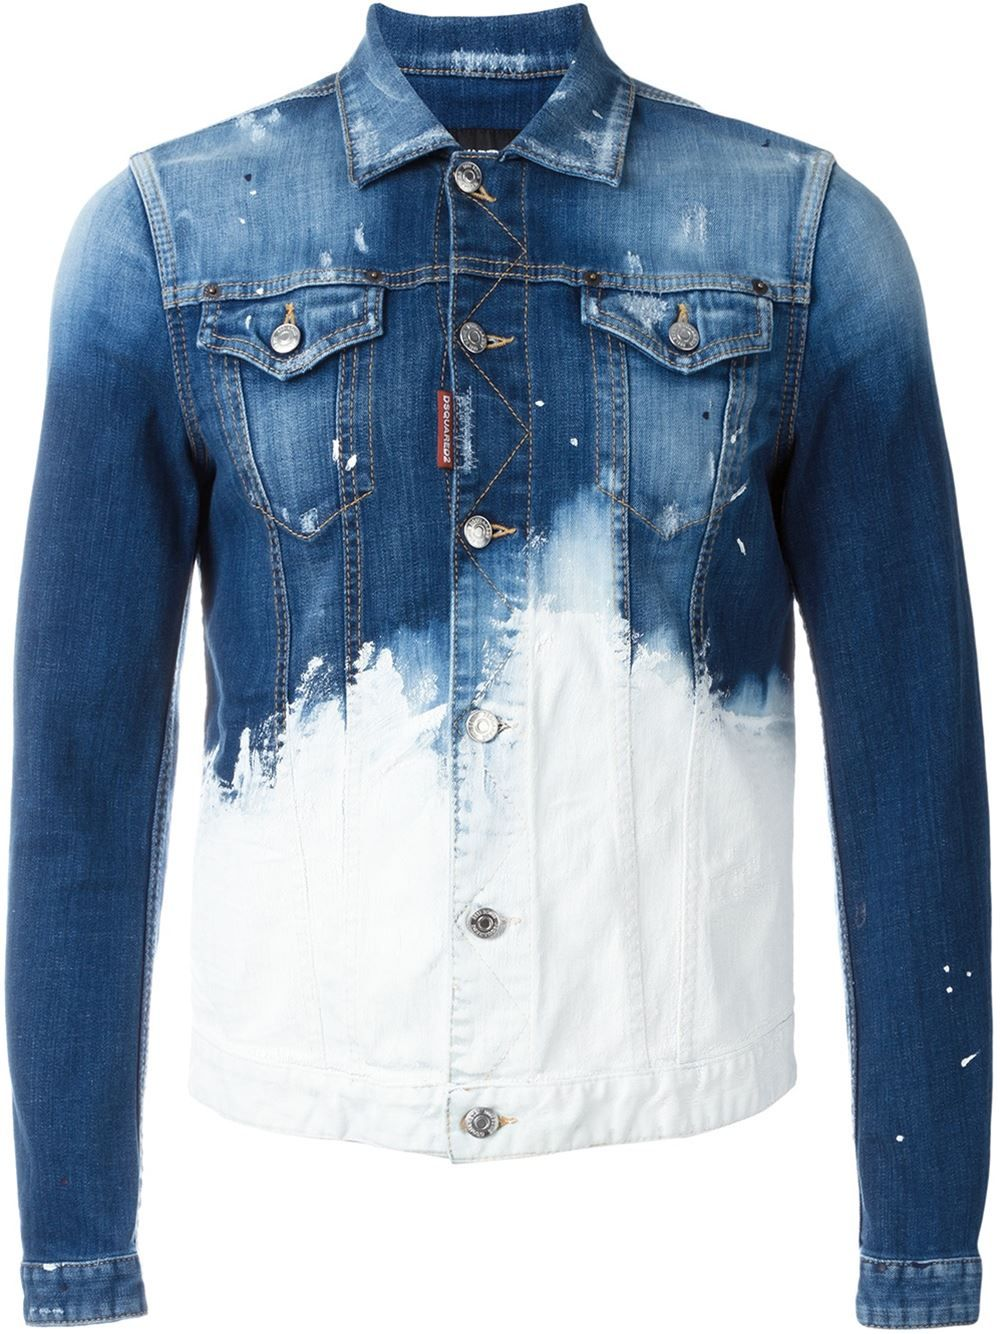 2cfc12f5a83 Dsquared2 paint splatter denim jacket More